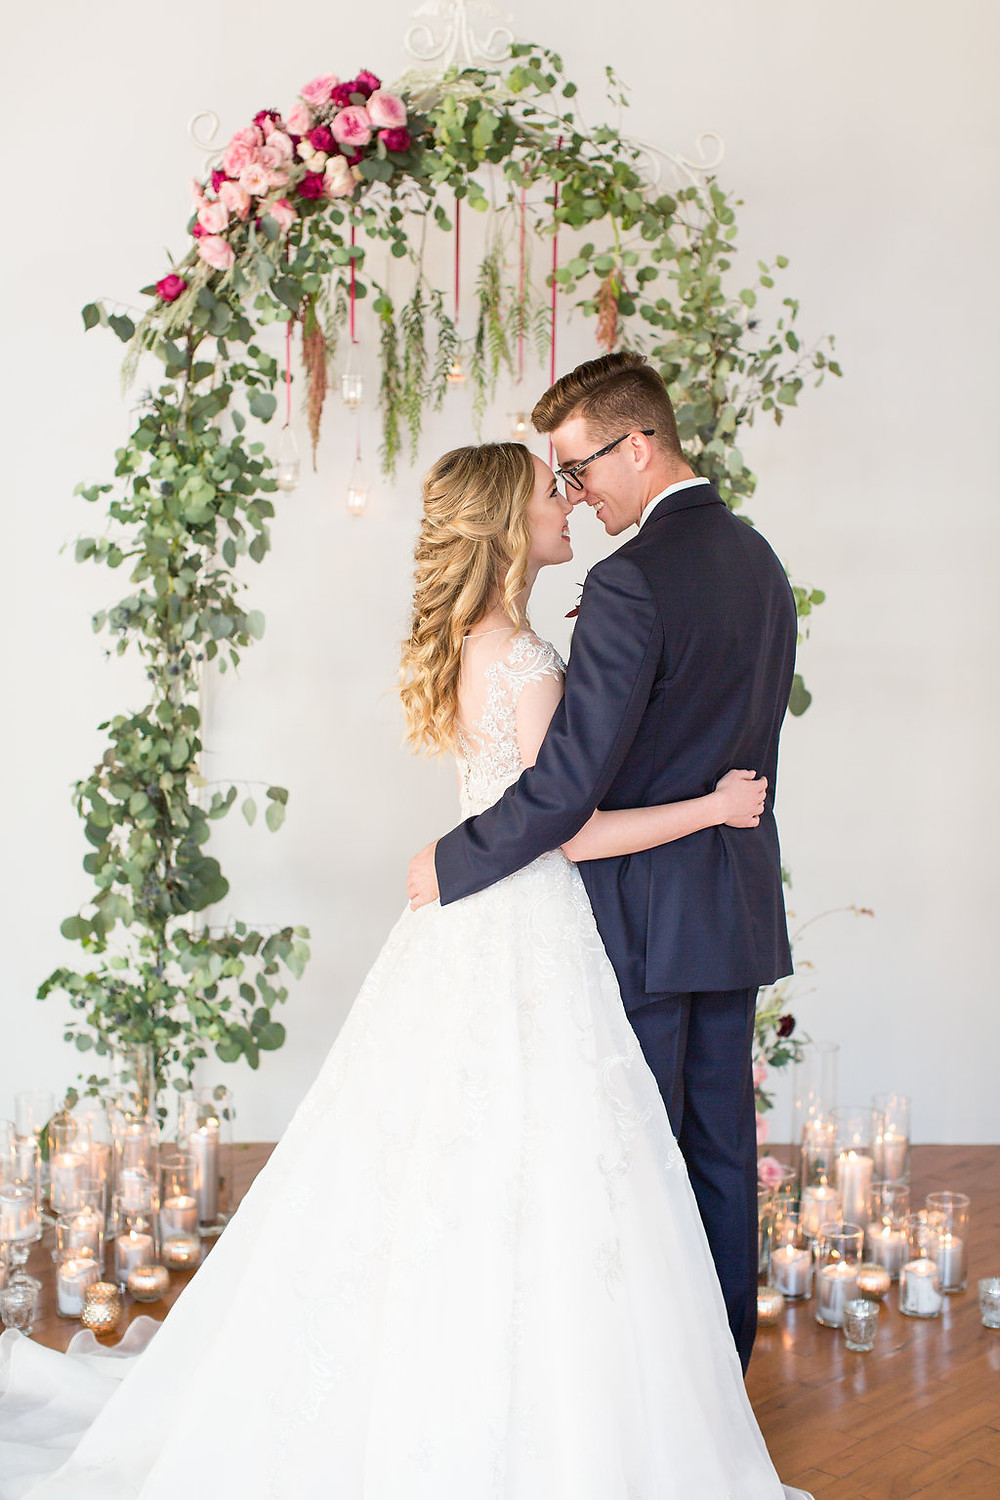 Covered in a garland of eucalyptus and roses, the ceremony arch brought a beautiful touch to the wedding.